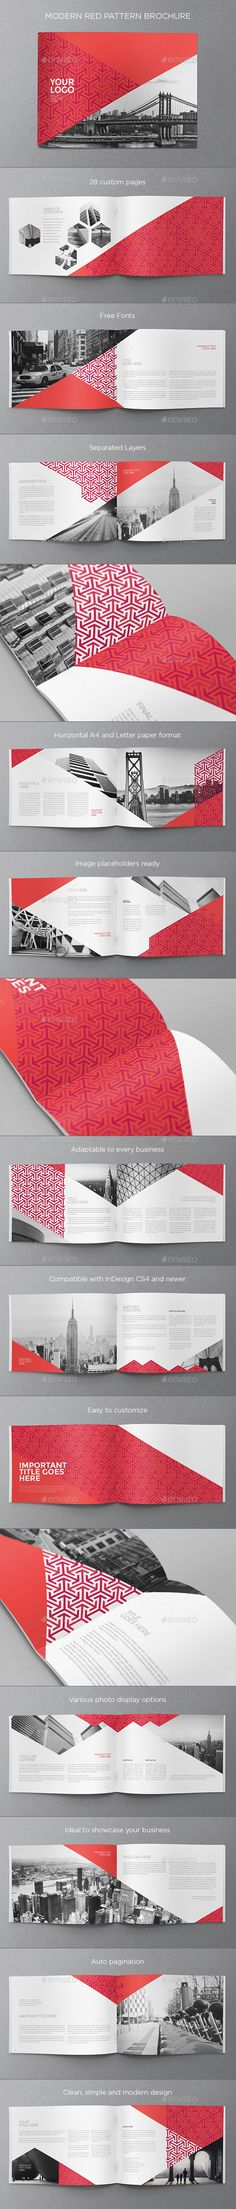 Modern Red Pattern Brochure — InDesign INDD #cool #pattern • Available here → https://graphicriver.net/item/modern-red-pattern-brochure/16132872?ref=pxcr